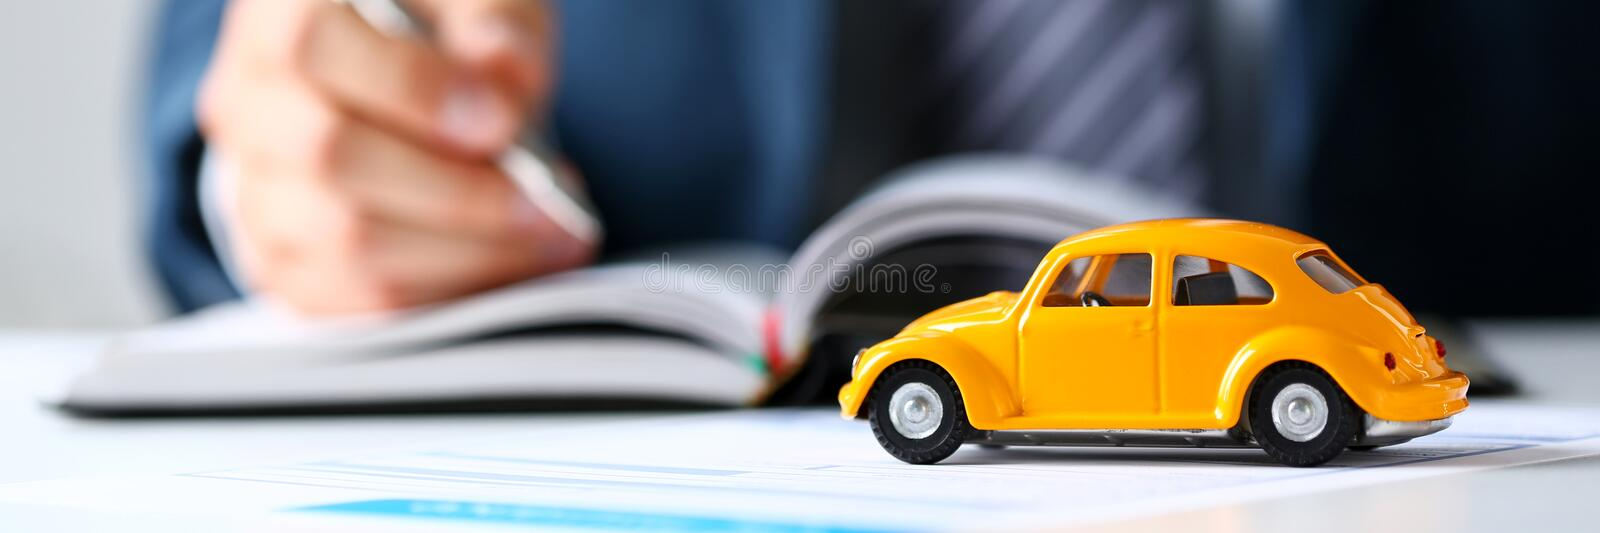 Unrecognizable yellow toy car on selling documents. Closeup with employee holding silver pen in background. Driver money loss prevention, carrier office, road royalty free stock photography